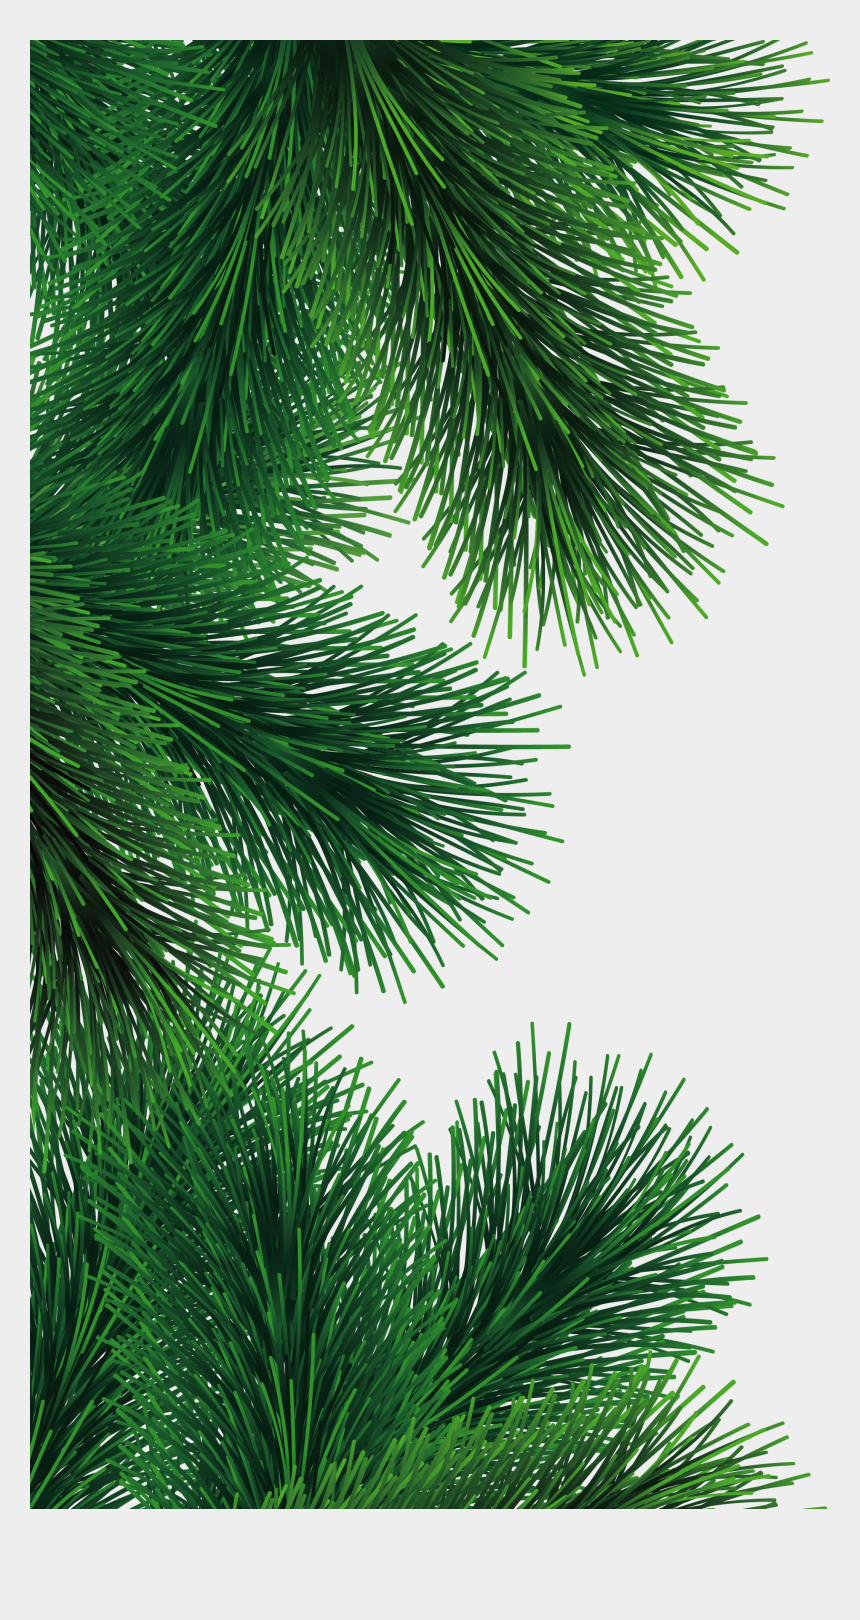 pine branches clipart, Cartoons - Fir-tree Branch Png Image - Fir Tree Branch Png